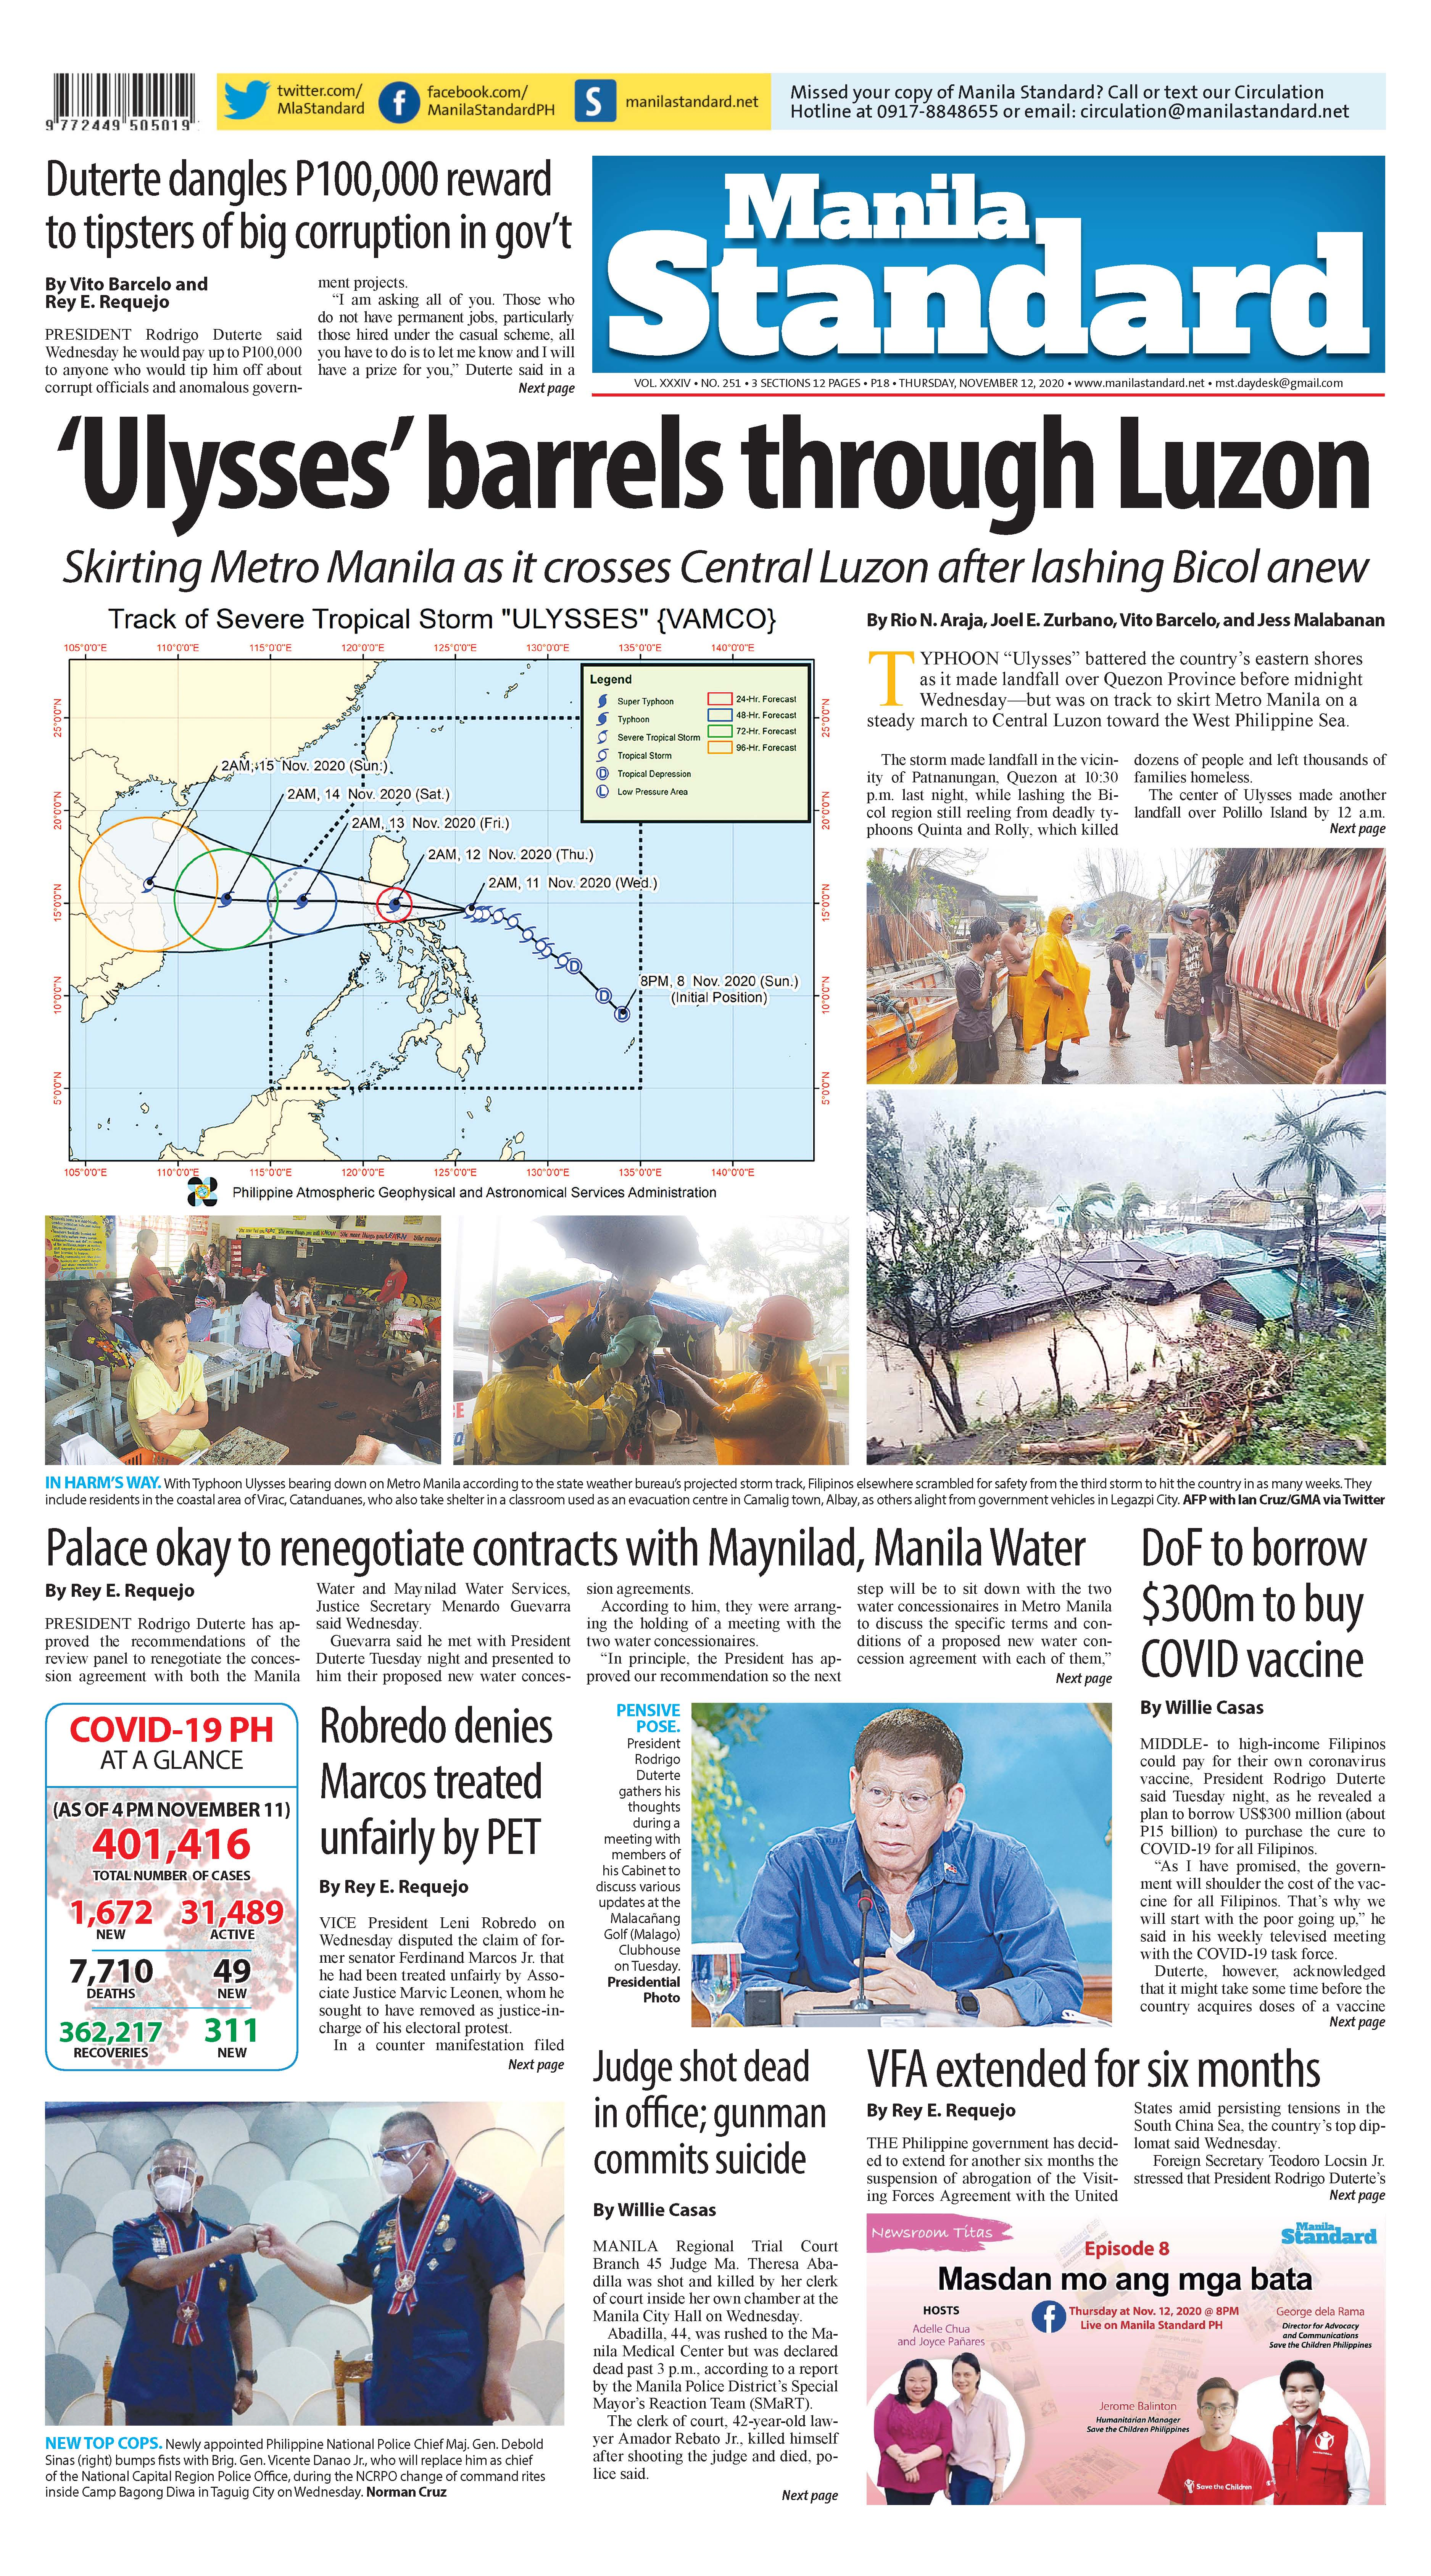 Thursday Print Edition (11/12/2020)